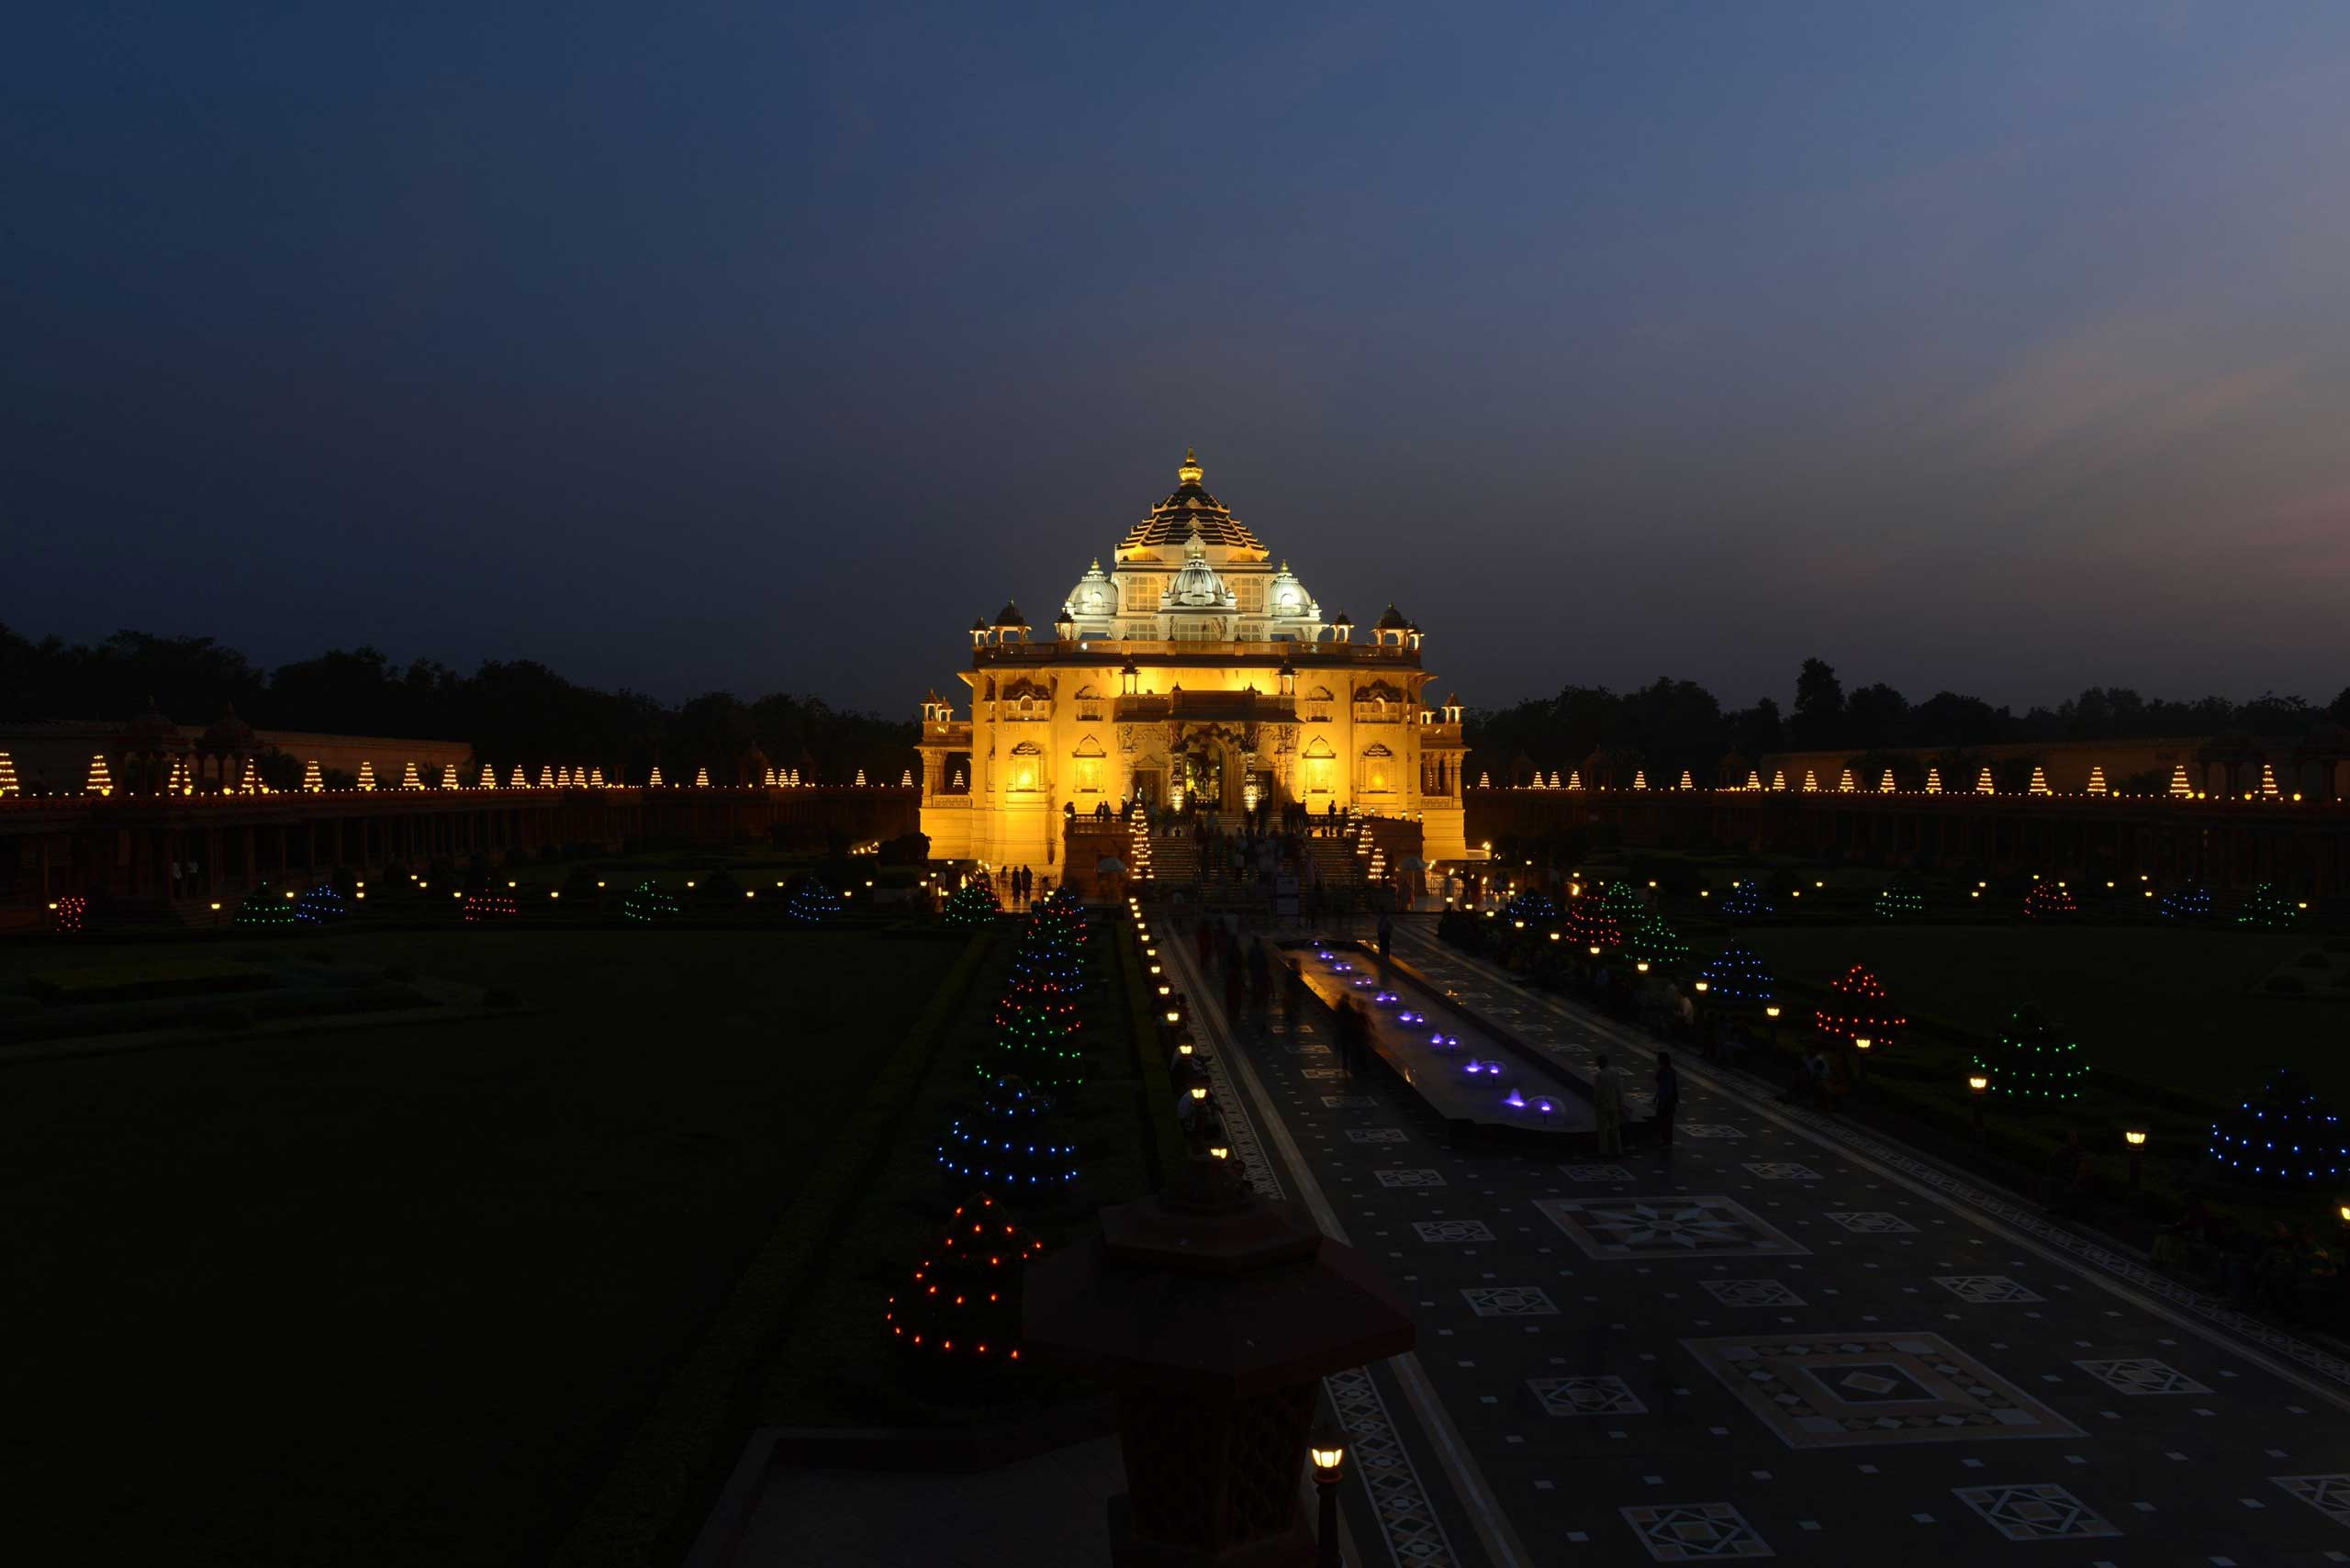 Visitors throng Akshardham temple, illuminated with some 10,000 oil-lit lamps on the eve of Diwali in Gandhinagar, India,  on Nov. 10, 2015.